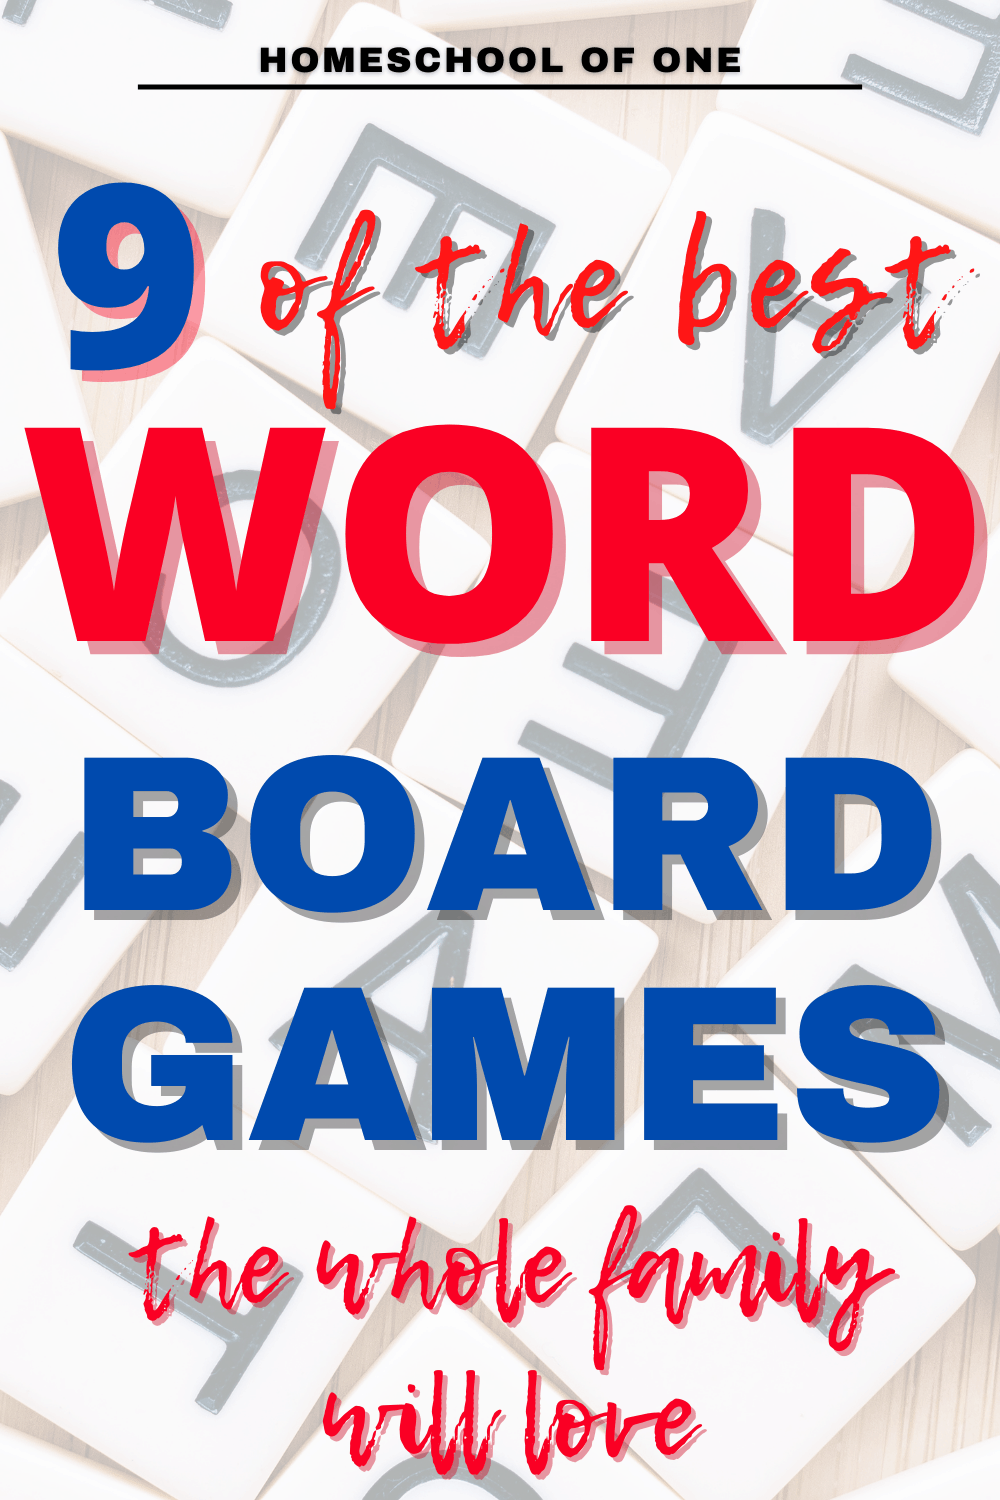 9 of the best word board games that are perfect for homeschooling #wordgames #boardgames